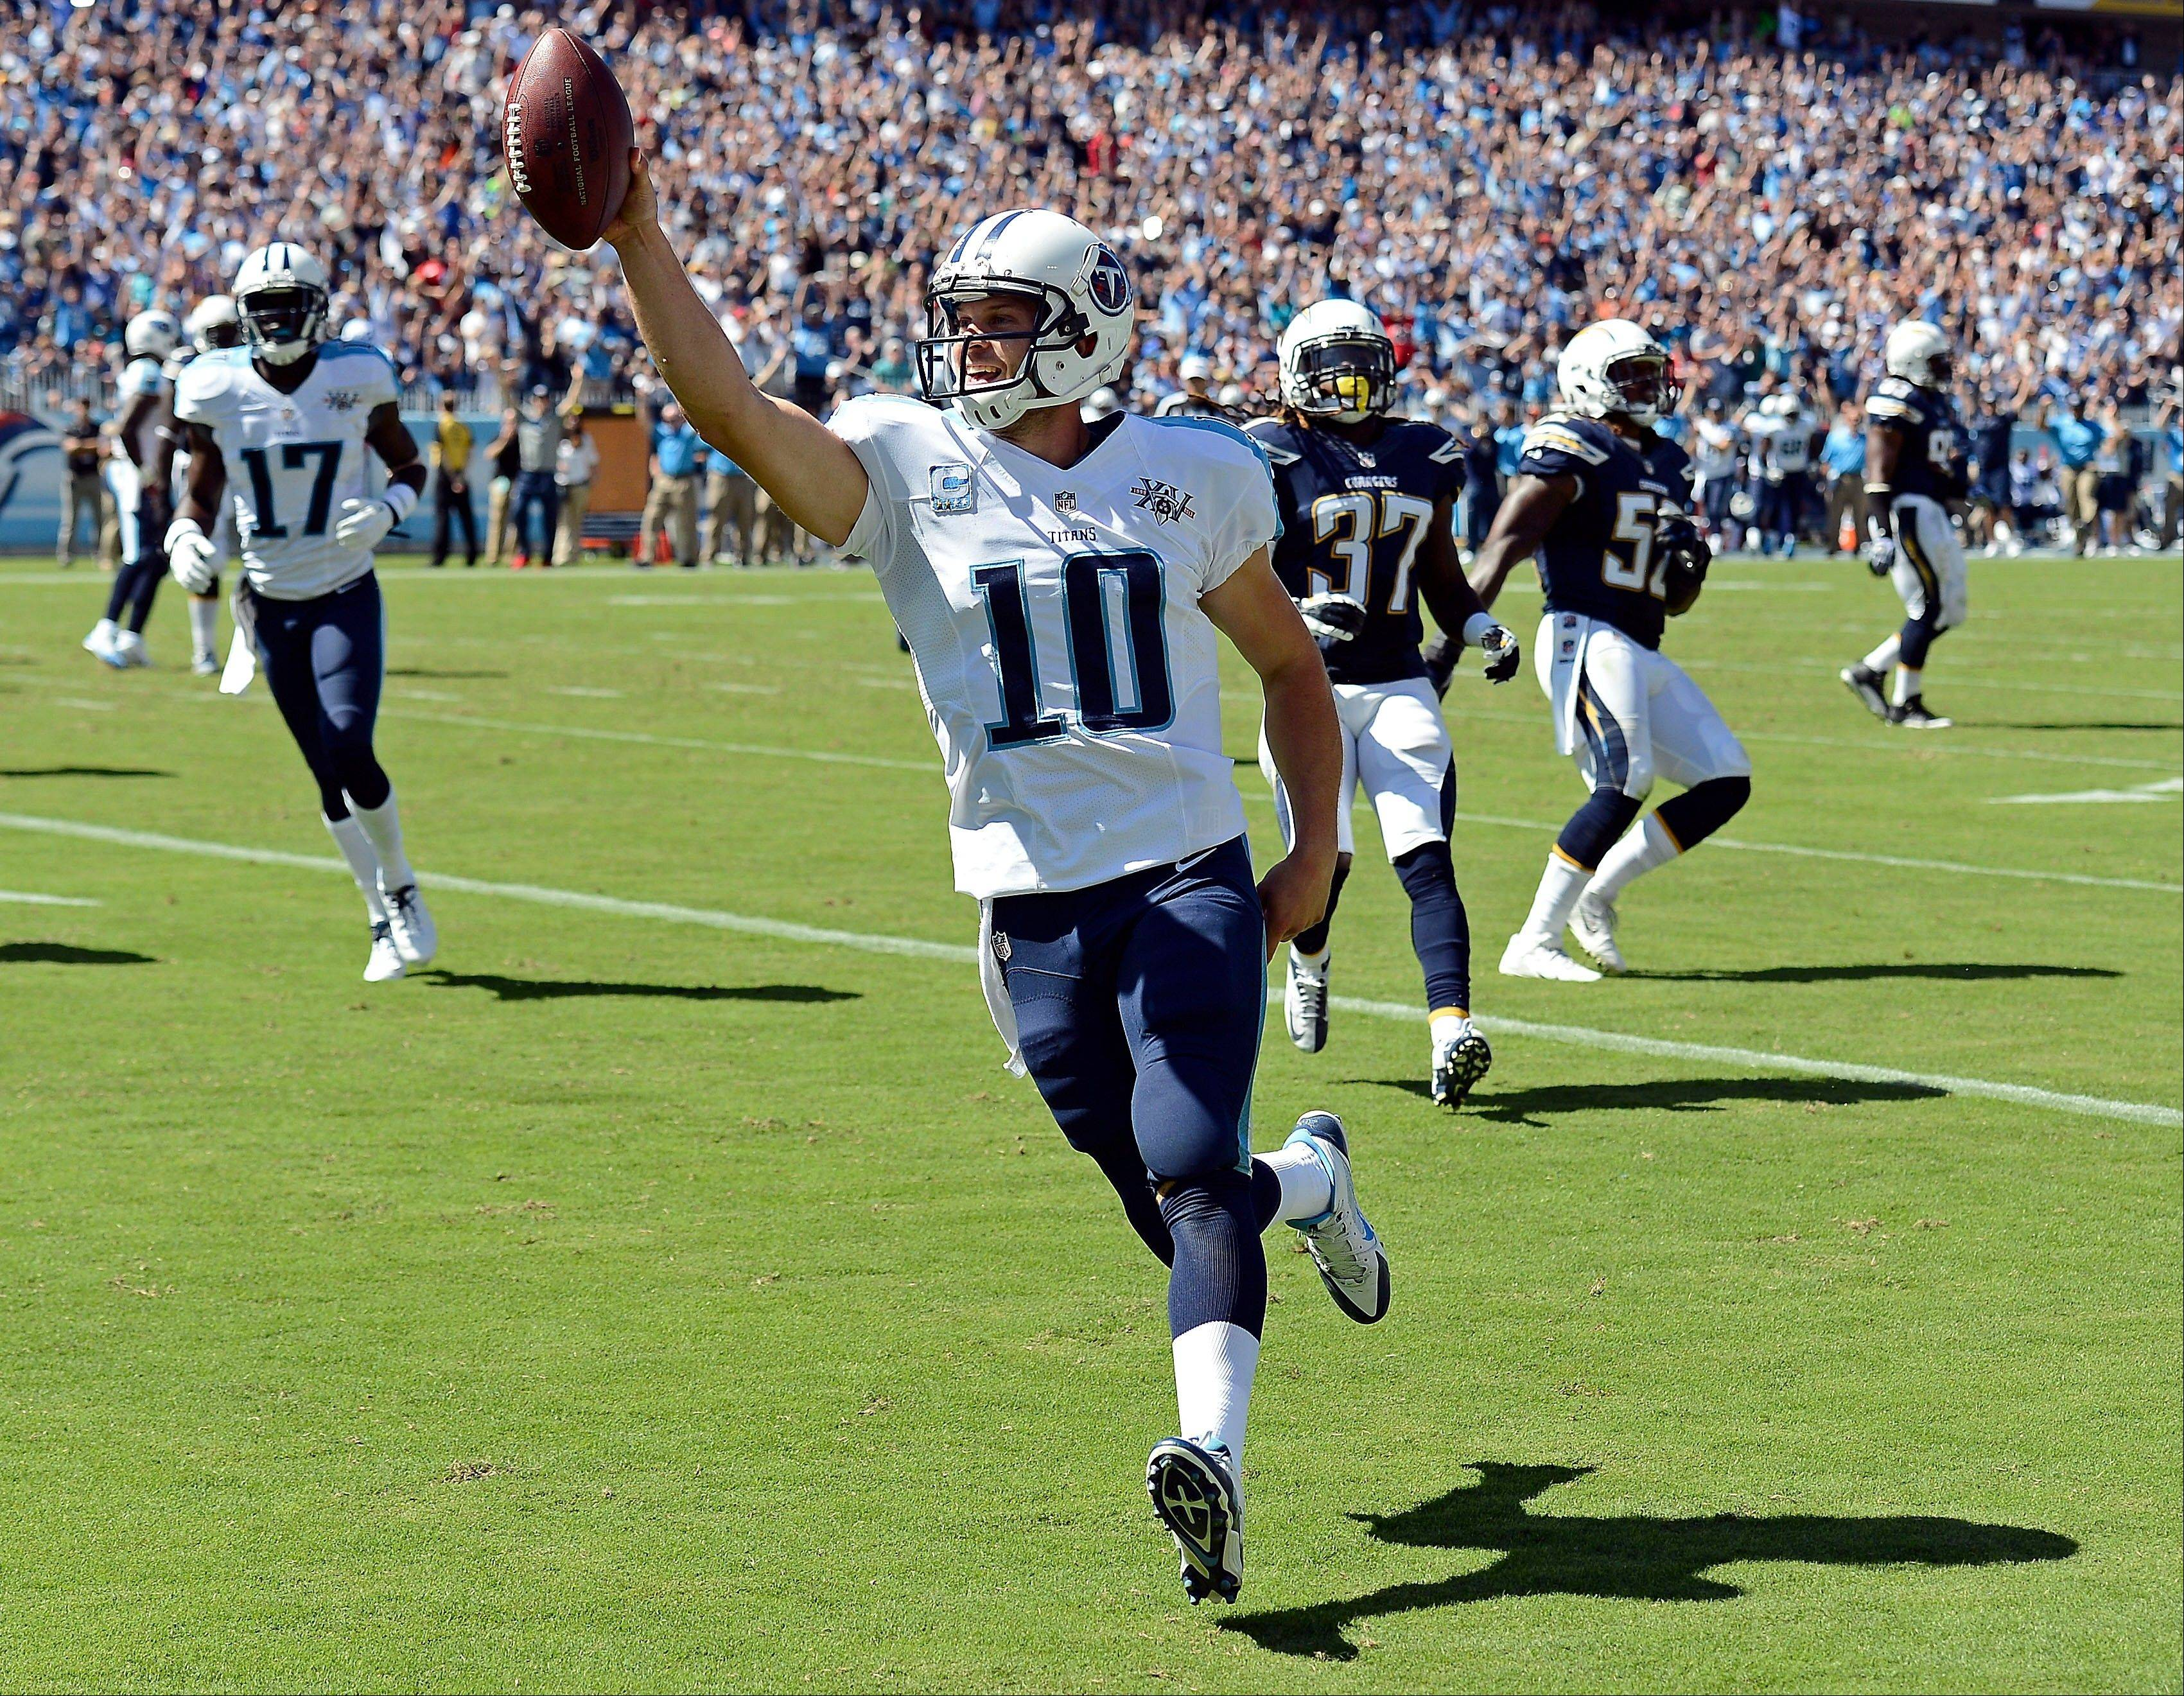 Tennessee Titans quarterback Jake Locker (10) celebrates as he scores a touchdown on a 7-yard run against the San Diego Chargers in the second quarter of an NFL football game on Sunday, Sept. 22, 2013, in Nashville, Tenn.